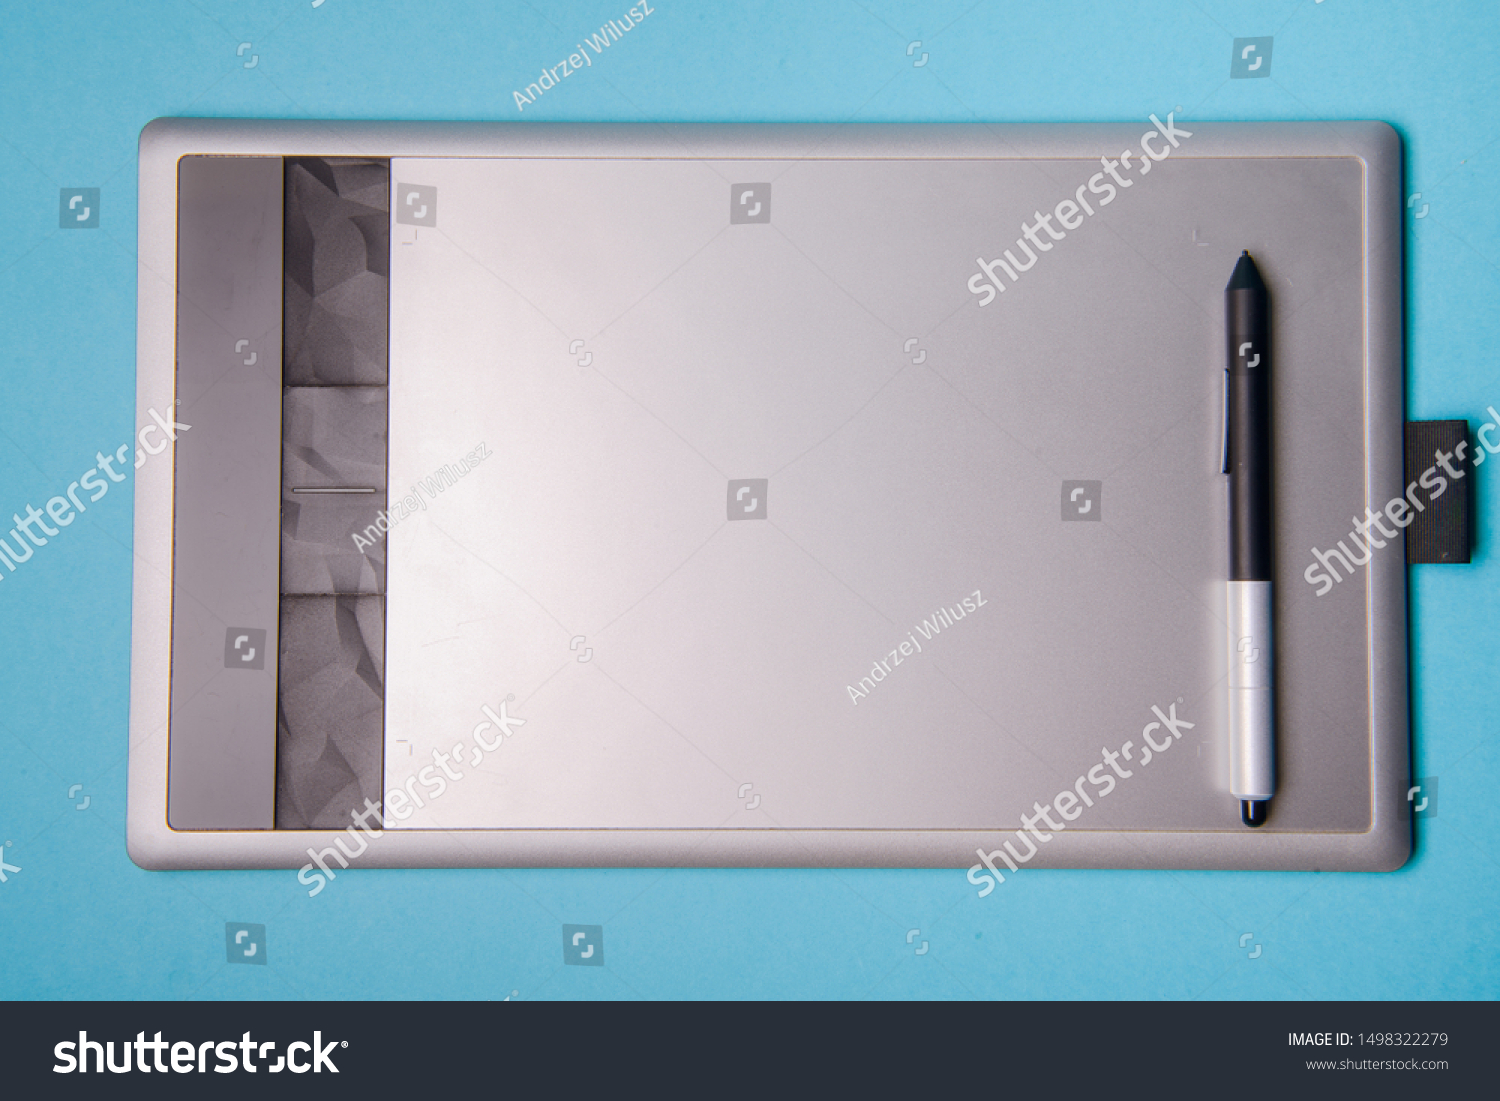 Graphic tablet with pen for illustrators and designers #1498322279